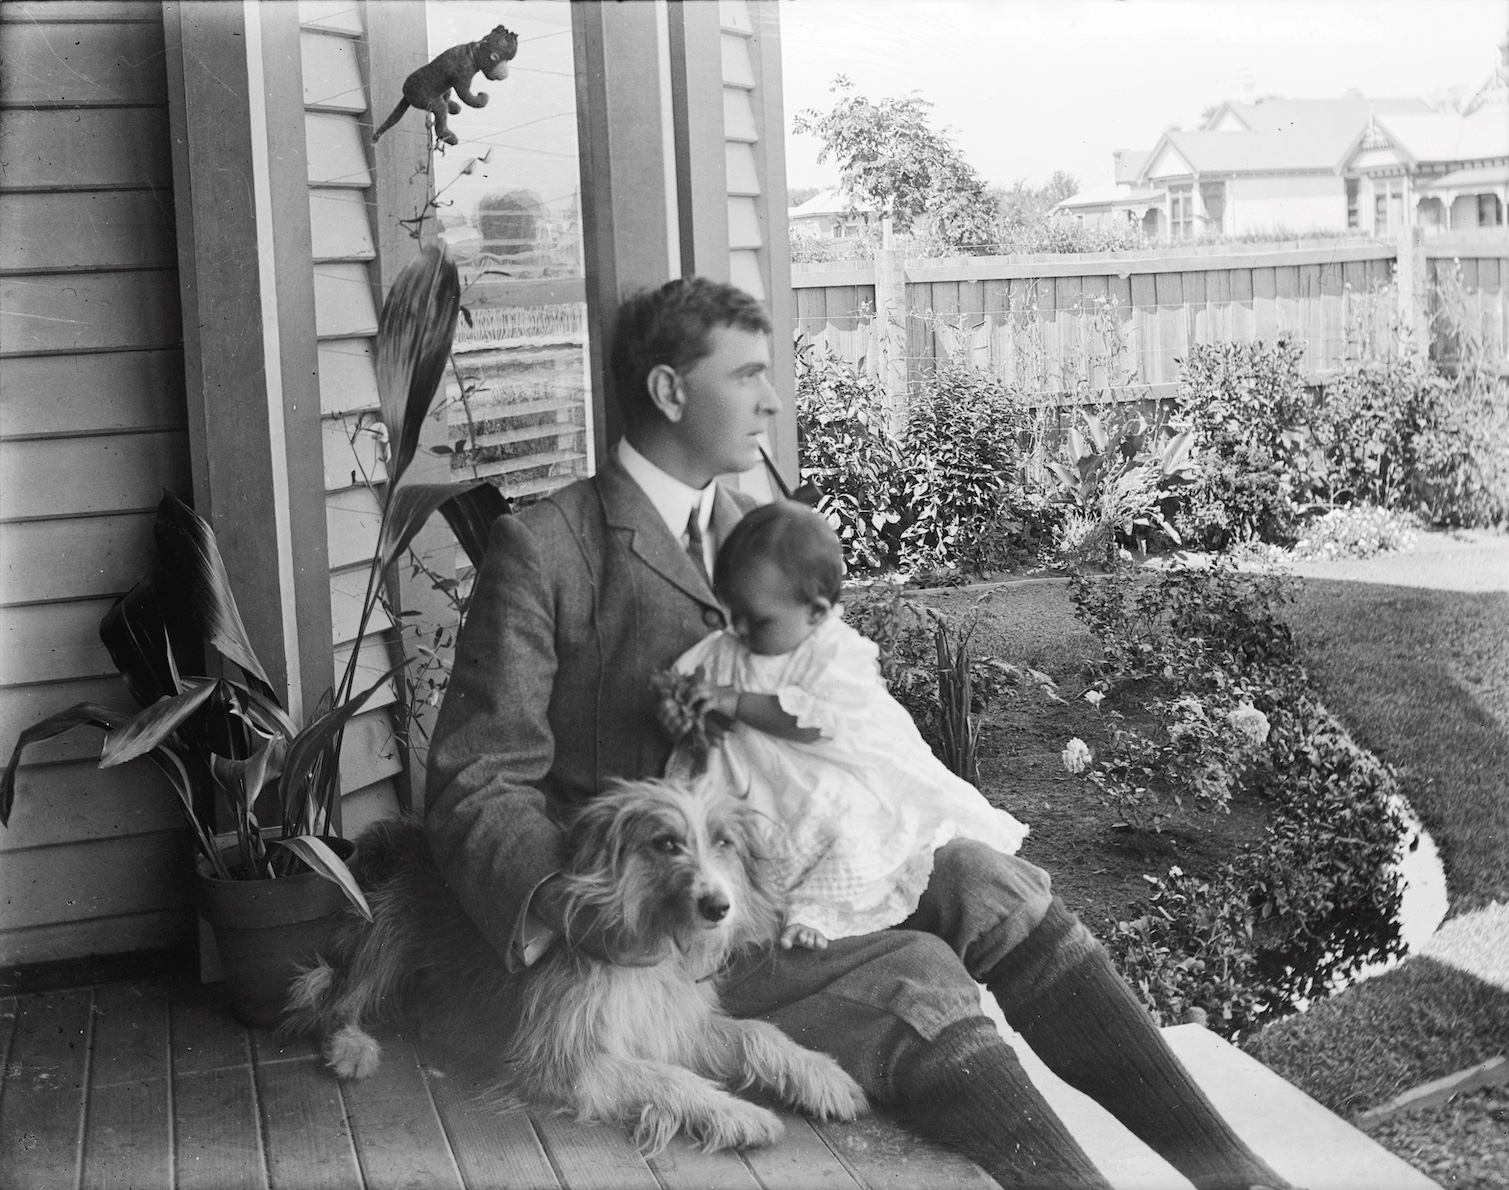 Man with baby. Possibly James and Roma Campbell. Bonus dog and toy monkey. New Zealand circa 1907-1916. Lemuel Lyes Collection.